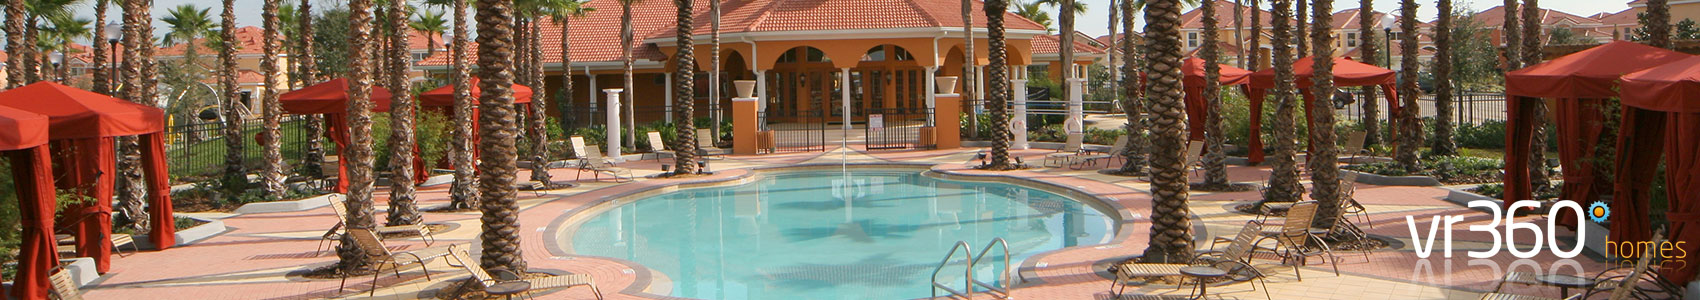 Solana Resort Villas in Orlando Florida